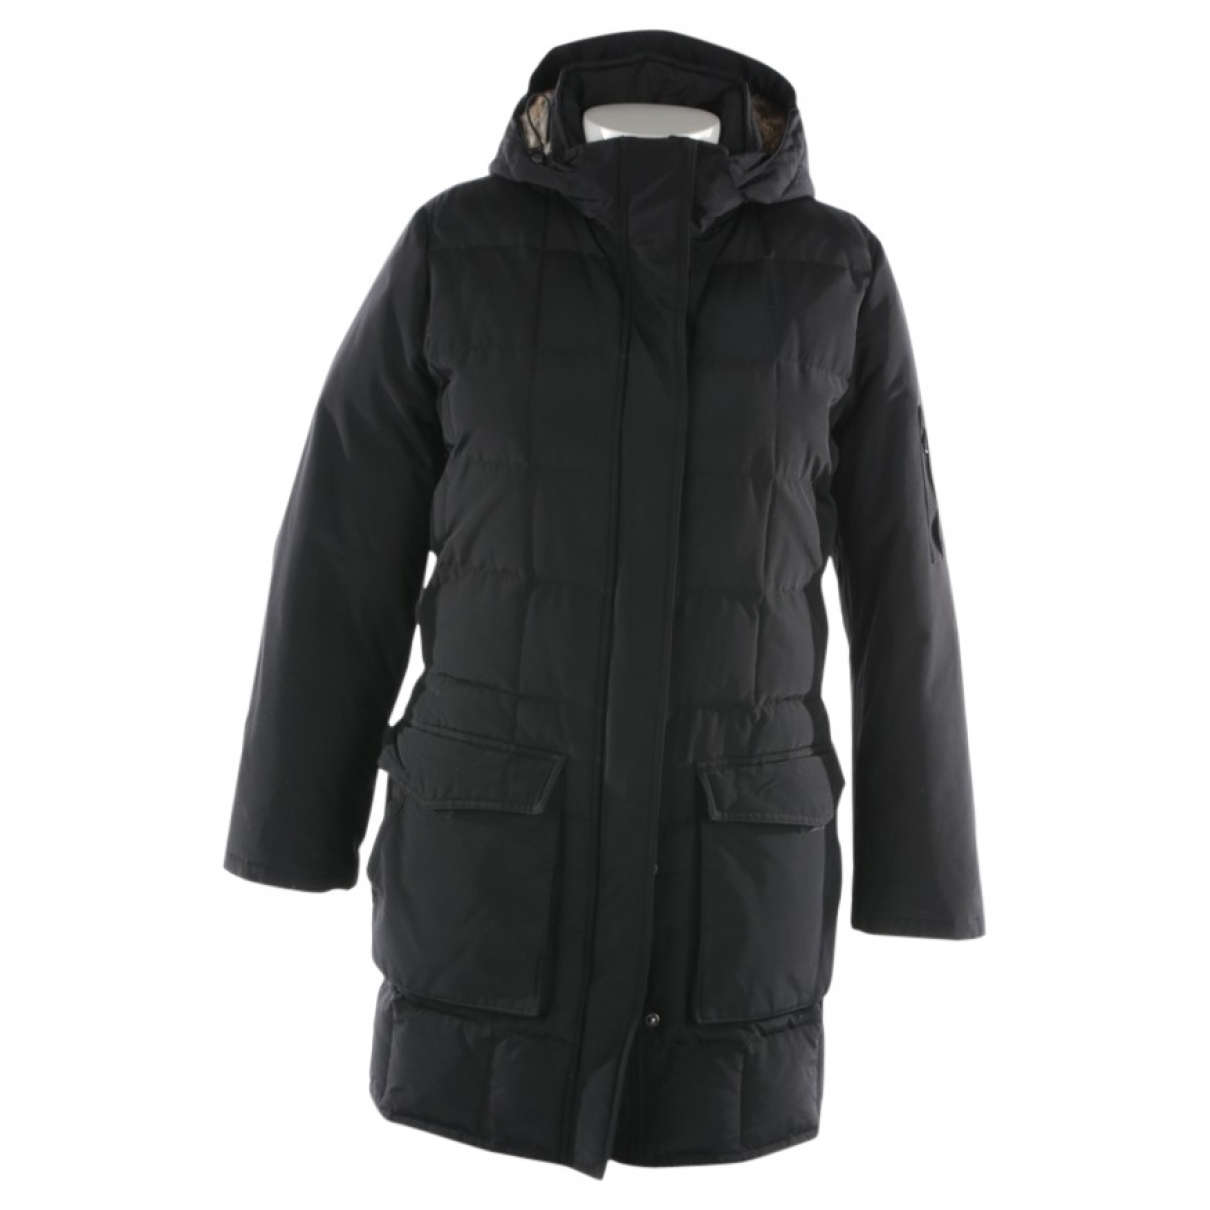 Woolrich \N Black coat for Women L International